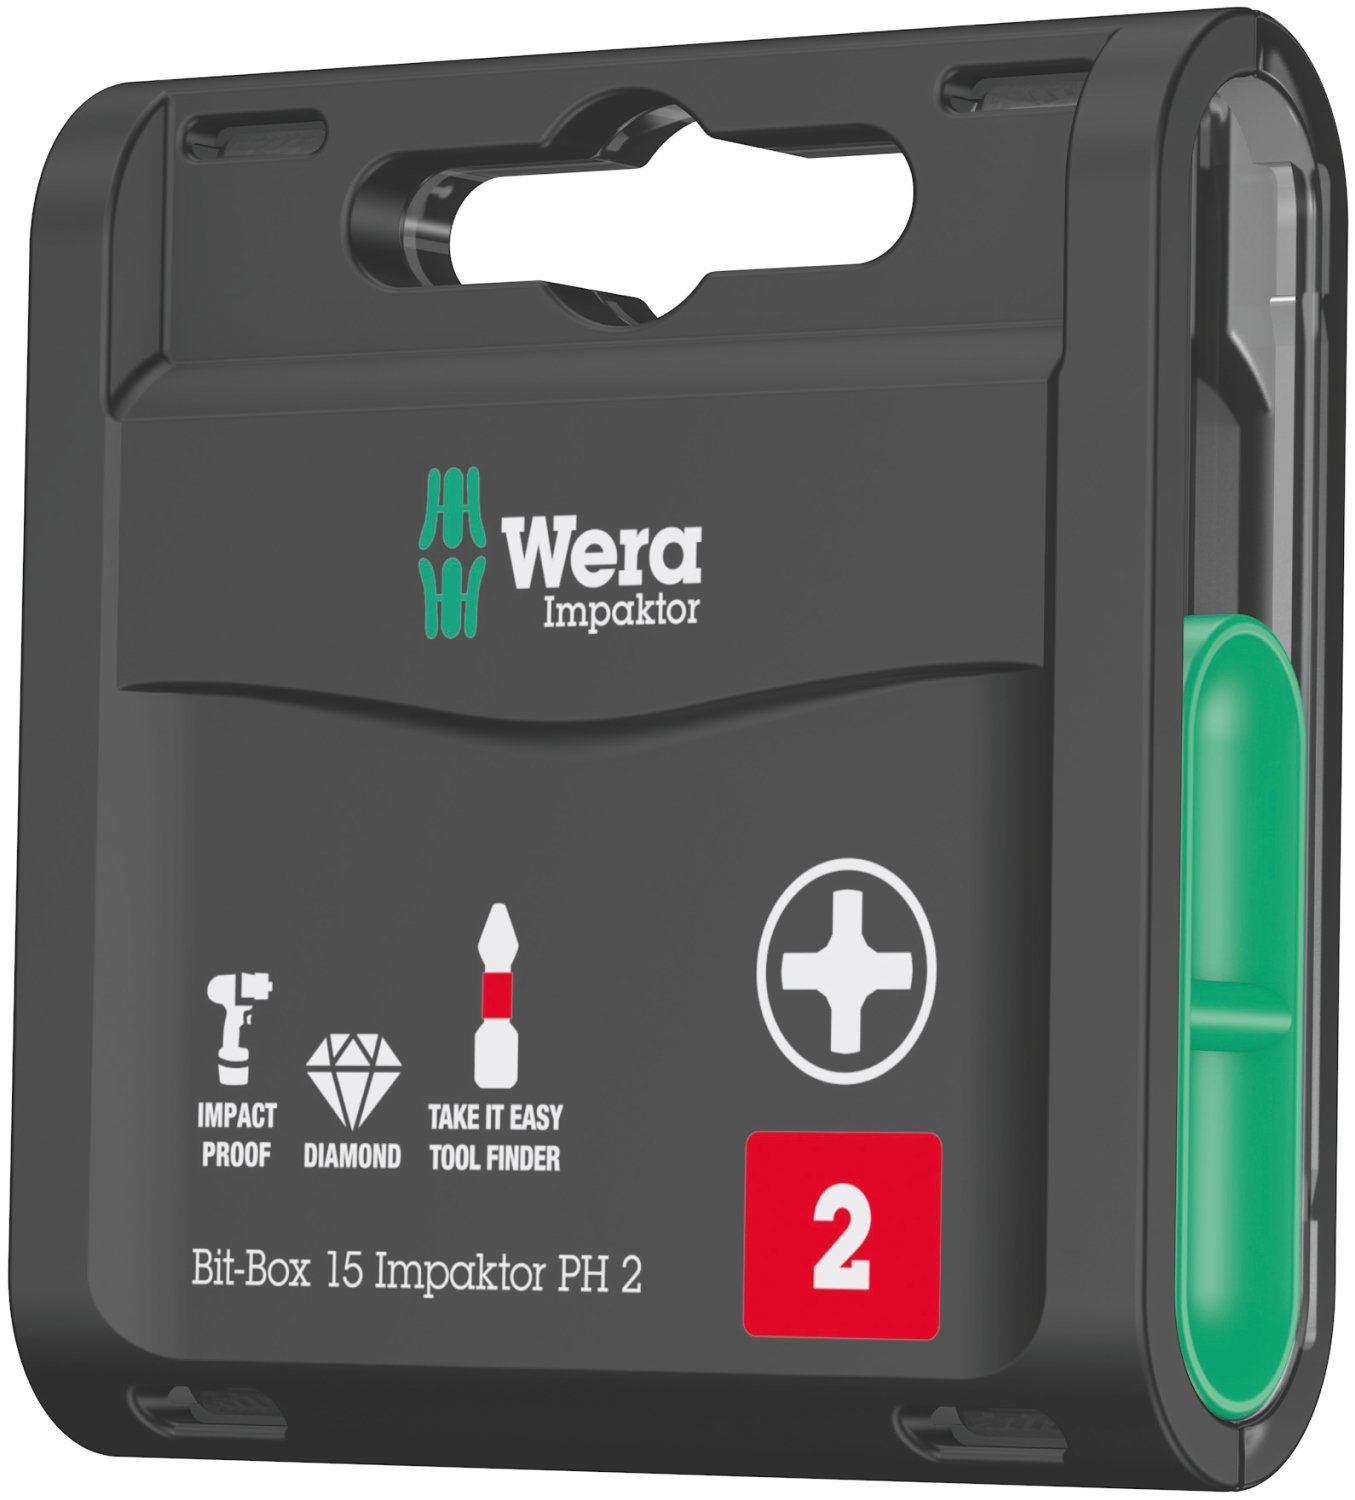 Wera 05057752001 Bit-Box 15 Impactor PH 2 (Pack of 15) by Wera